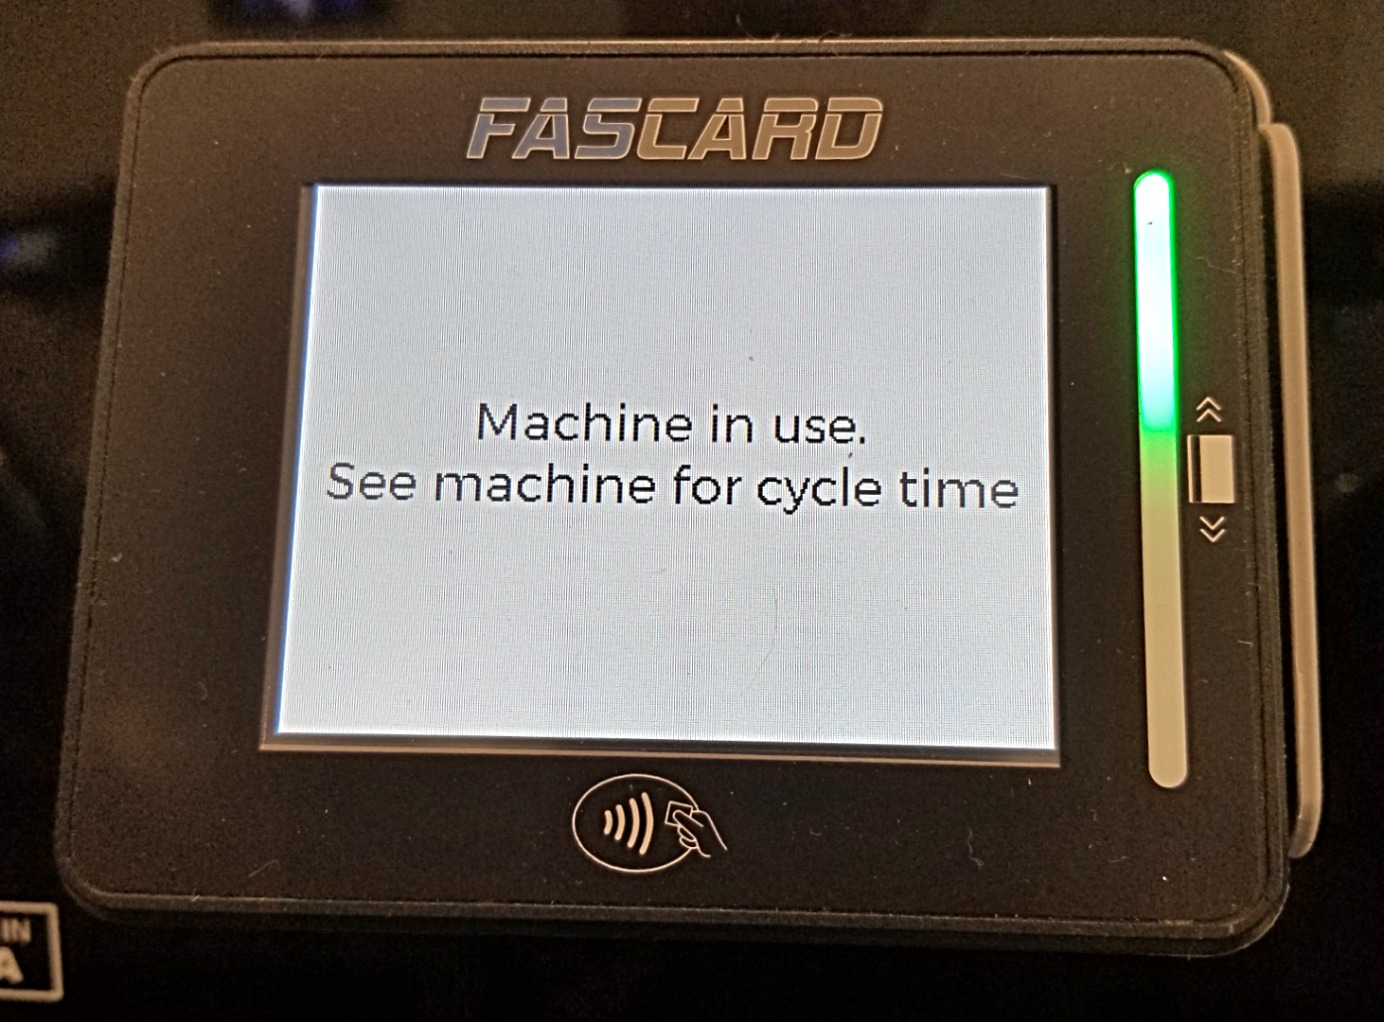 FasCard Laundry Card System